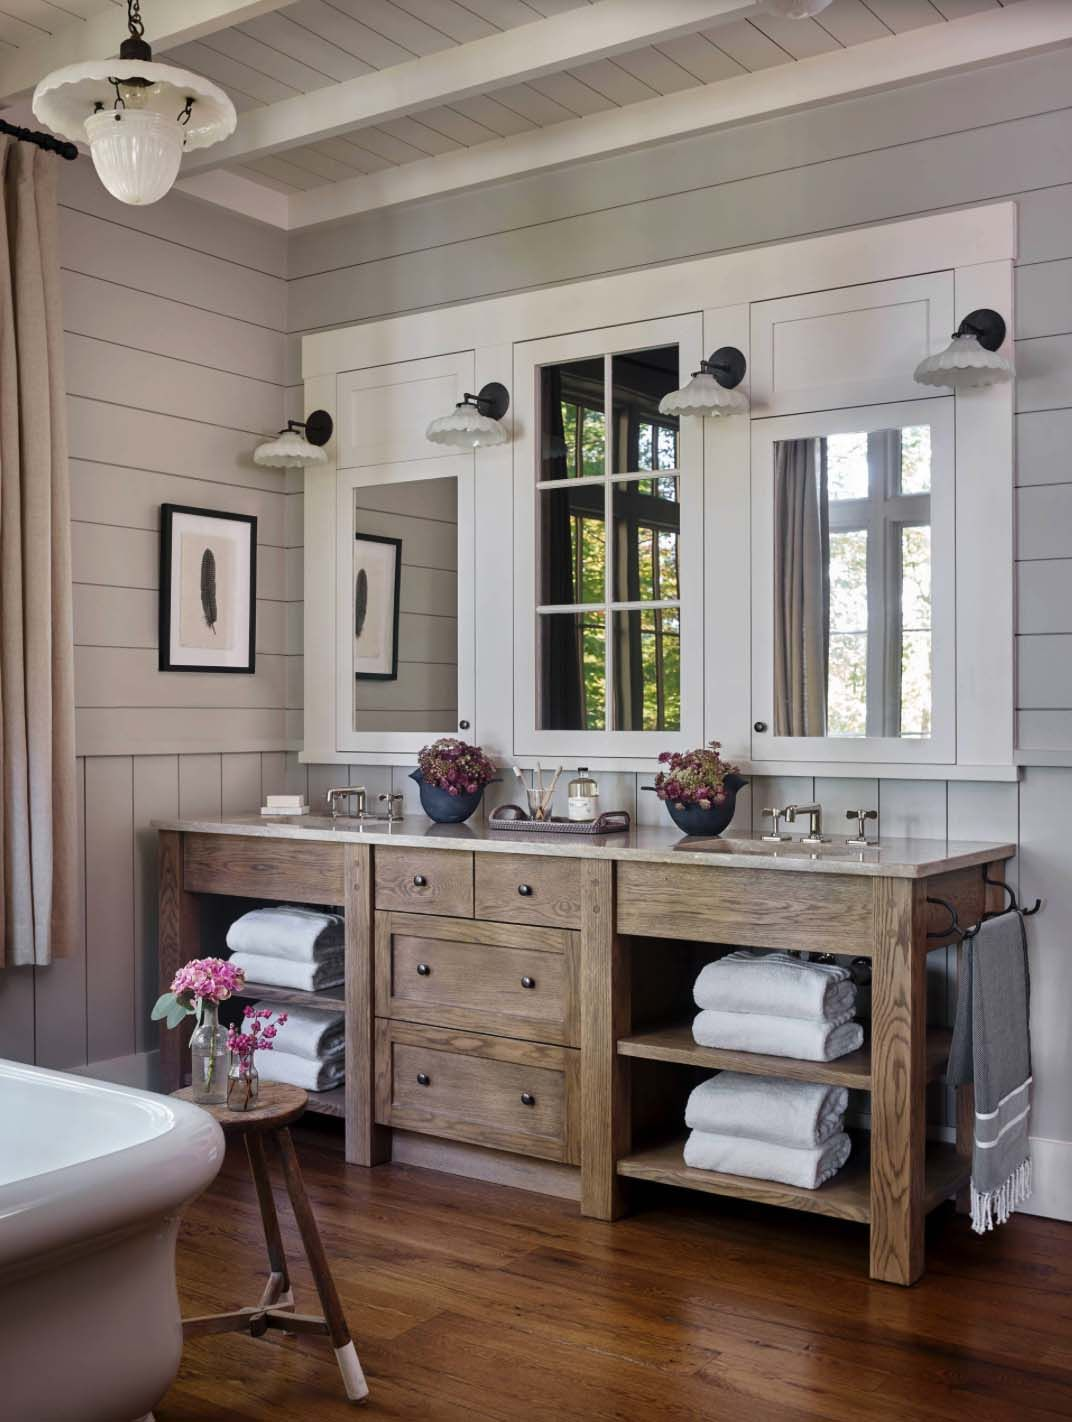 Photo of Whimsical lakeside cottage retreat with cozy interiors on Lake Keowee